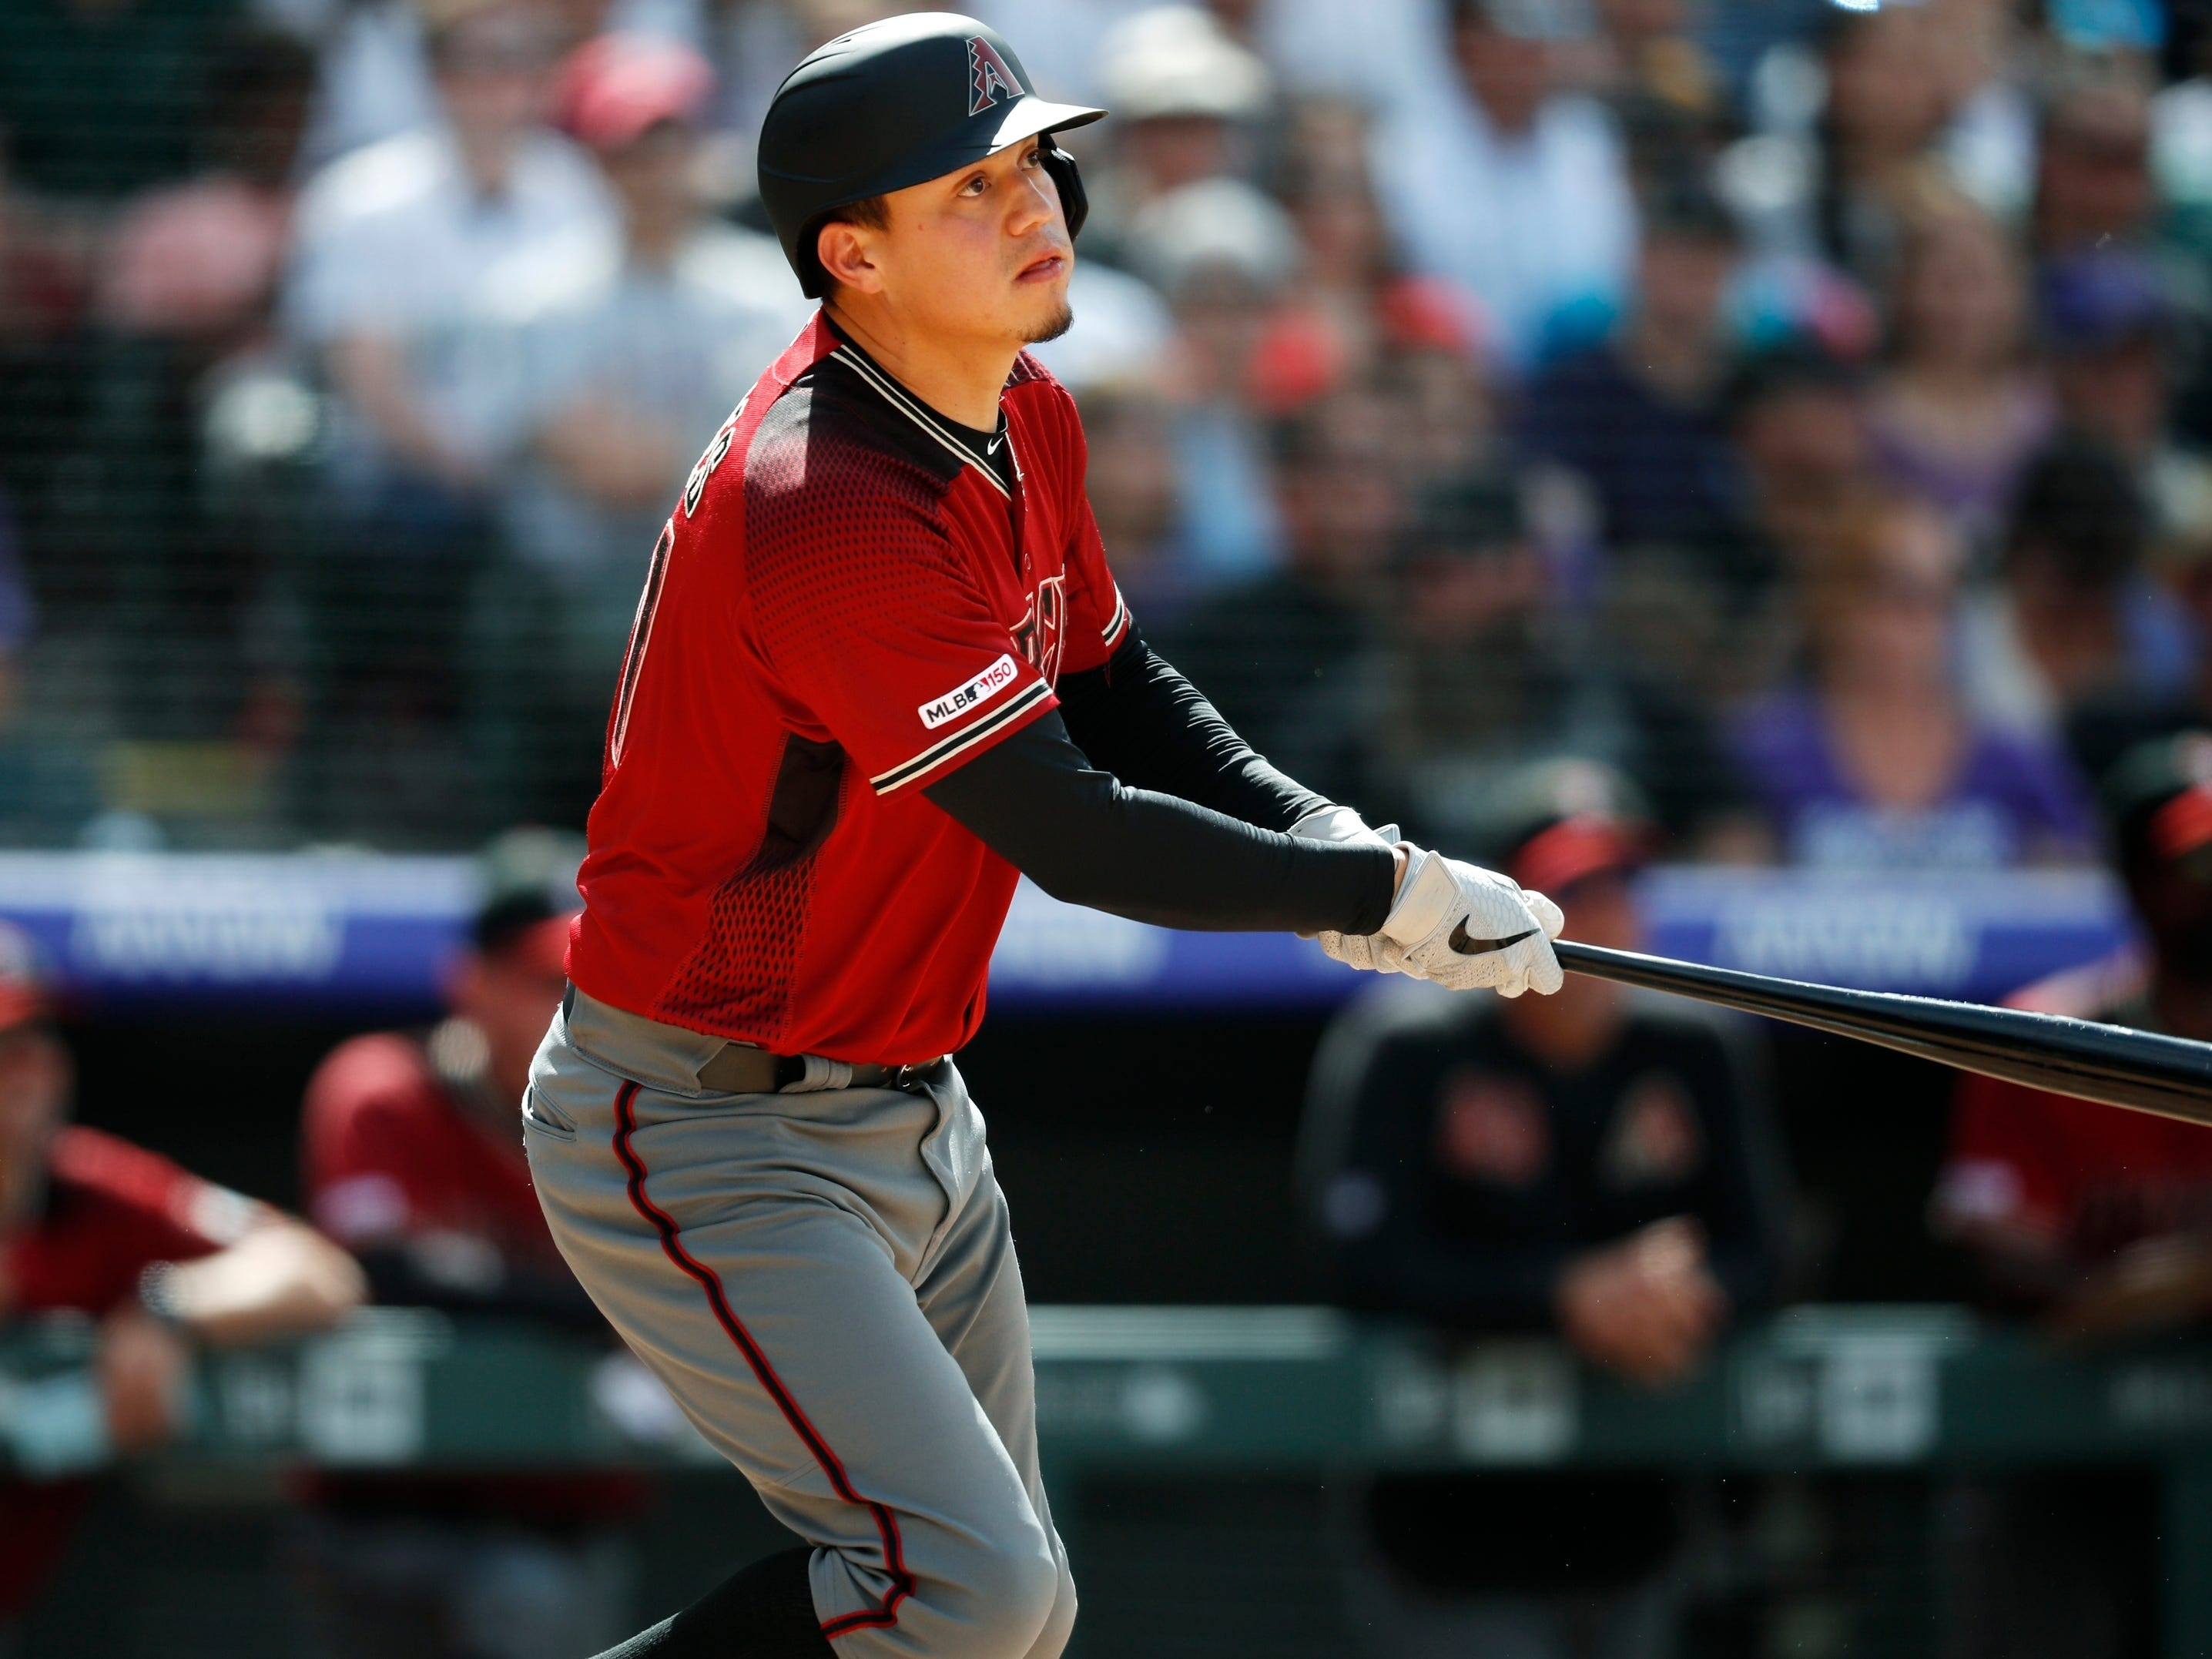 Arizona Diamondbacks pinch-hitter Wilmer Flores follows the flight of his RBI-single off Colorado Rockies relief pitcher Scott Oberg in the eighth inning of a baseball game Sunday, May 5, 2019, in Denver. The Rockies won 8-7. (AP Photo/David Zalubowski)